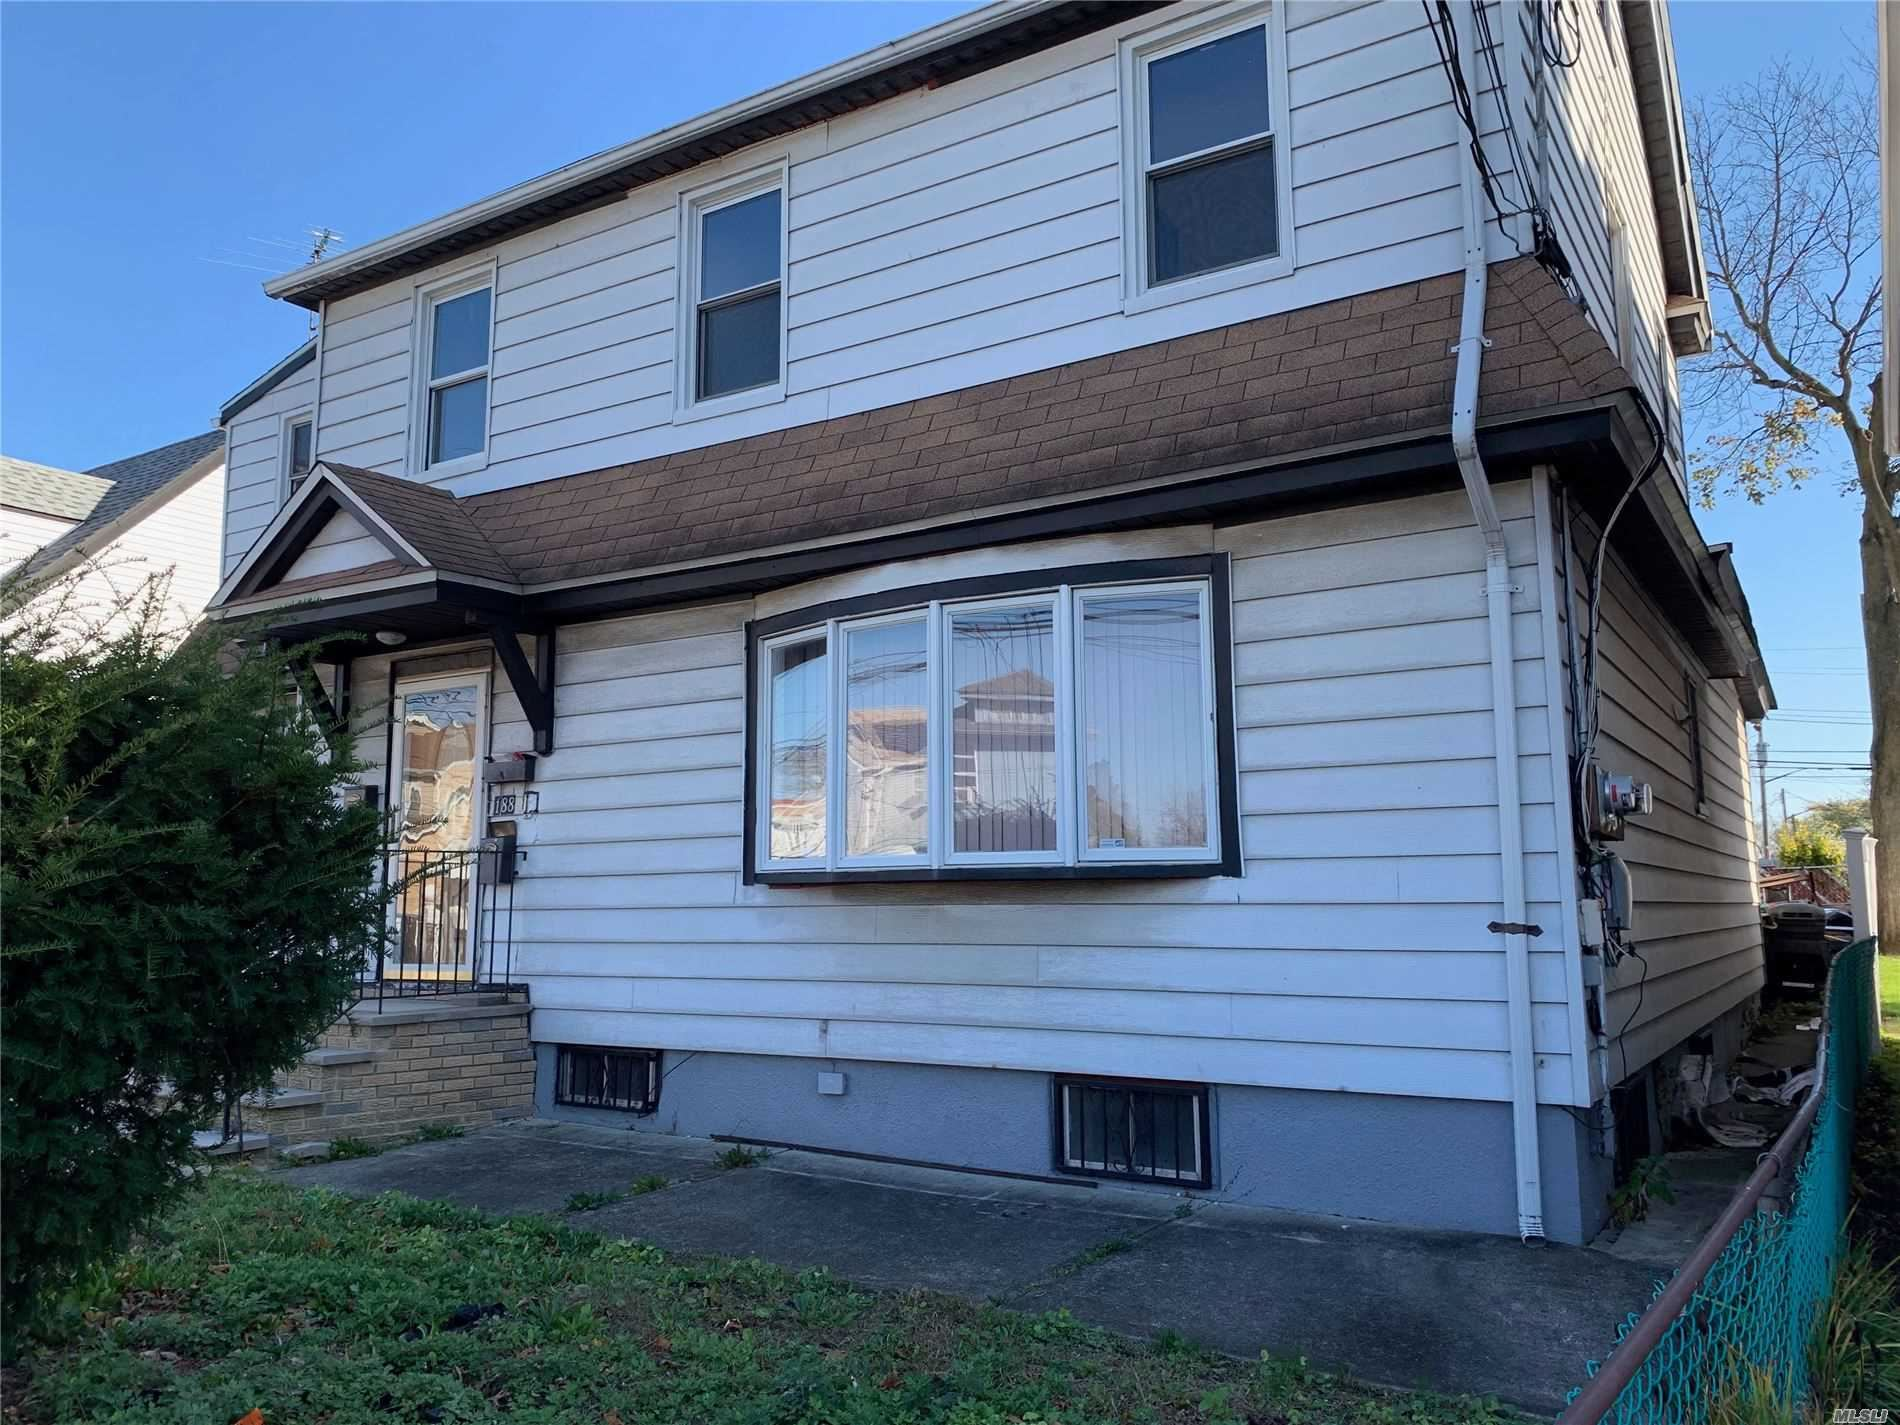 188-18 120th Road, St. Albans, NY 11412 - MLS#: 3184573